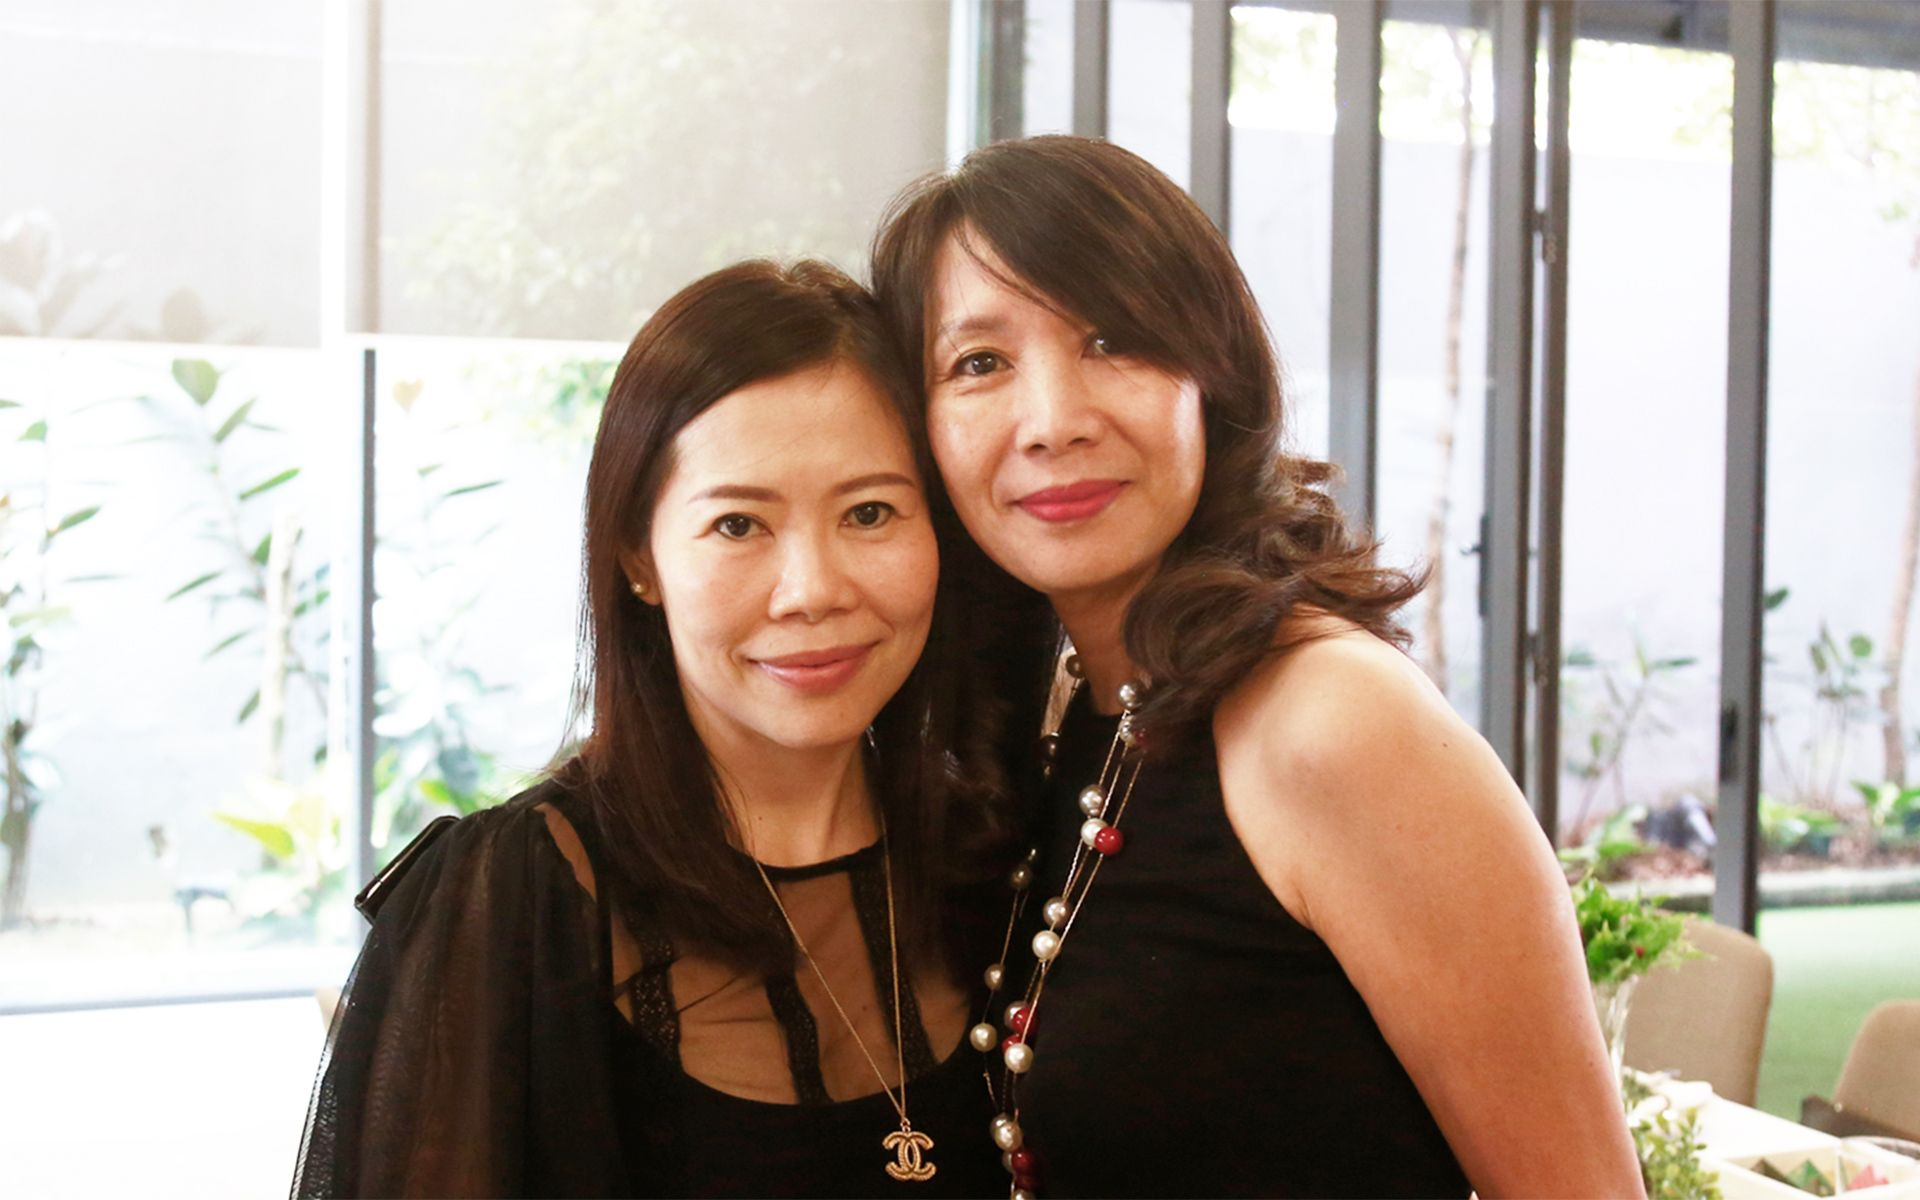 Stephanie Lian and Sally Seow